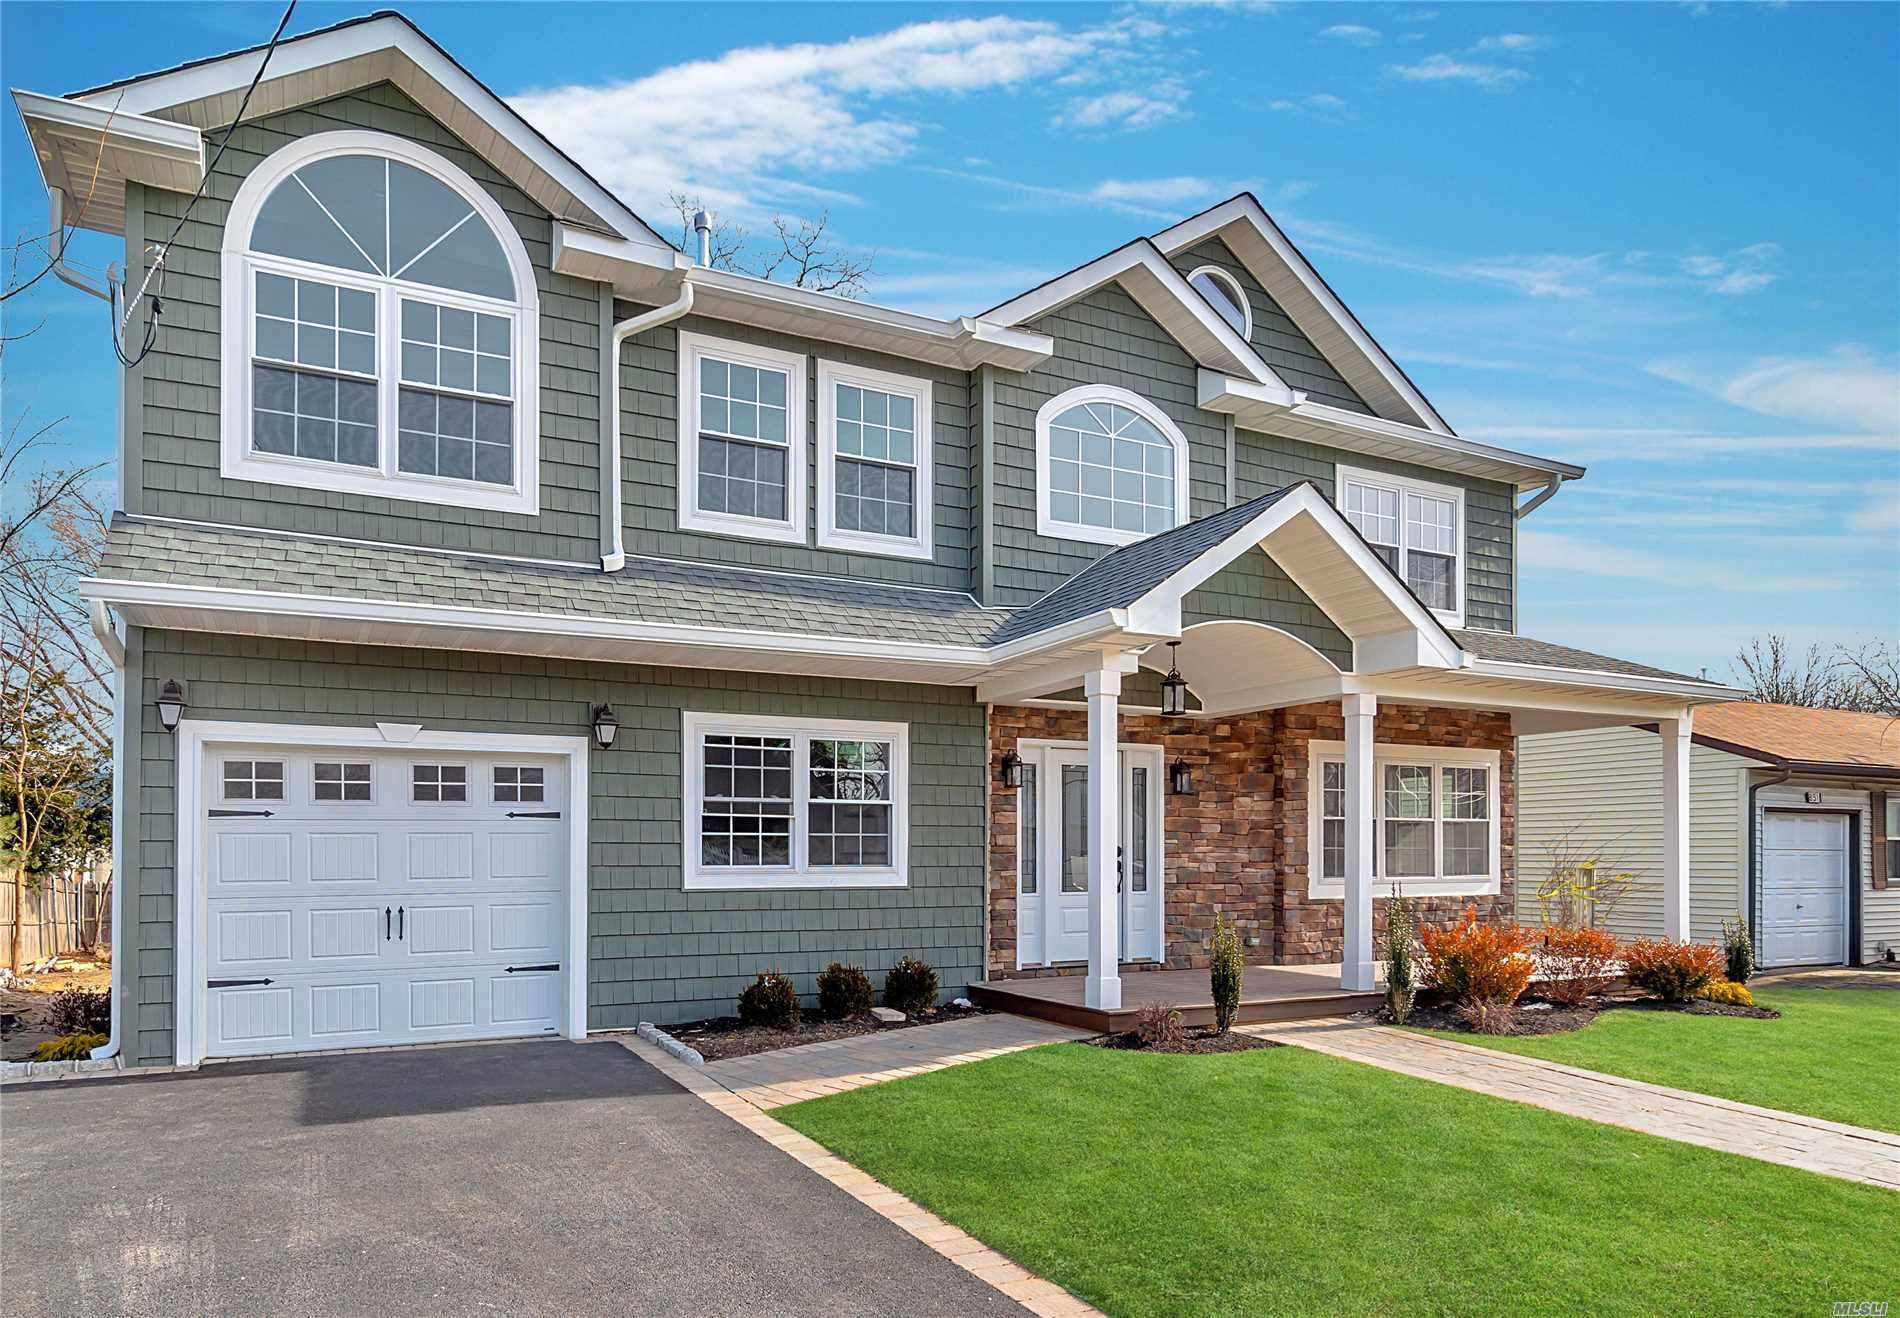 This Custom Residence Is Designed With Hardwood Floors Throughout, An Open Kitchen Plan. Master And 3 Bedrooms On Second Floor And One Bedroom On Main Level Makes This Easy Living. Ceilings And Windowed Walls Fill The Home With Natural Light. Magnificent Grand Foyer With Chandelier Lift Kit. Other Features Includes Central Air Condition, Hot Air Heating, Laundry On The First Floor.